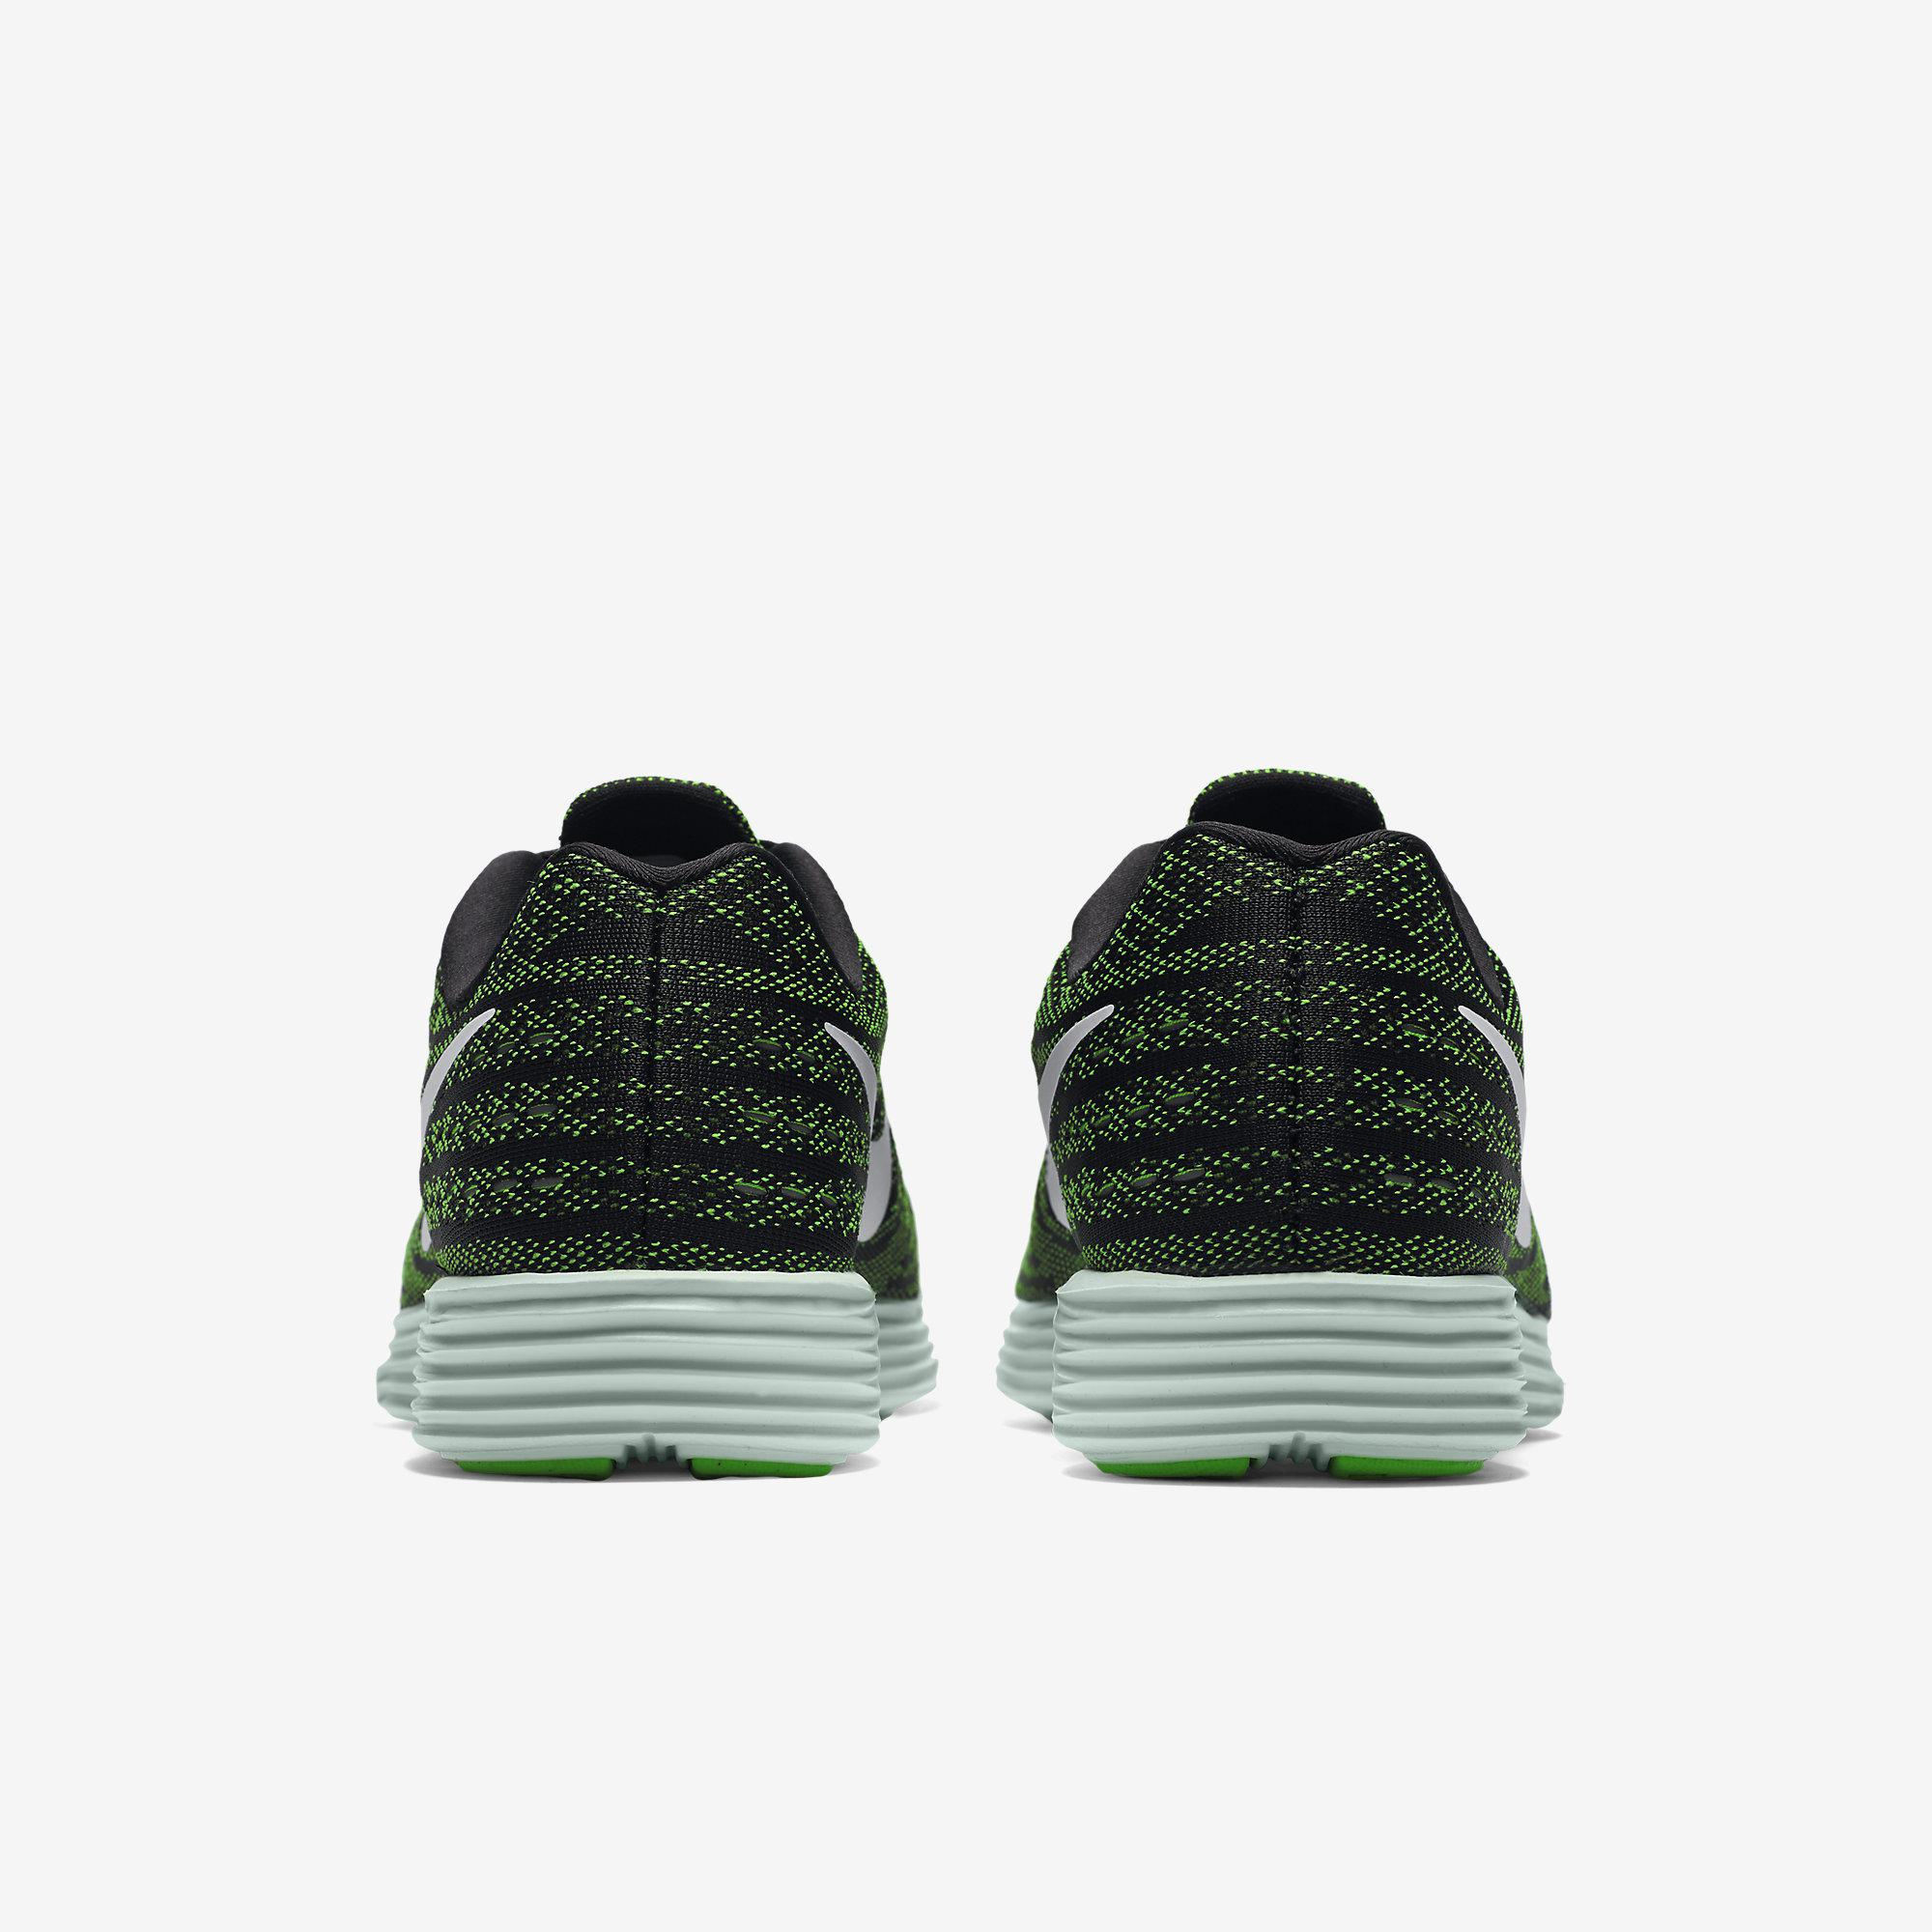 new concept 78780 7a0f1 Nike Womens LunarTempo 2 Running Shoes - Volt Green/White